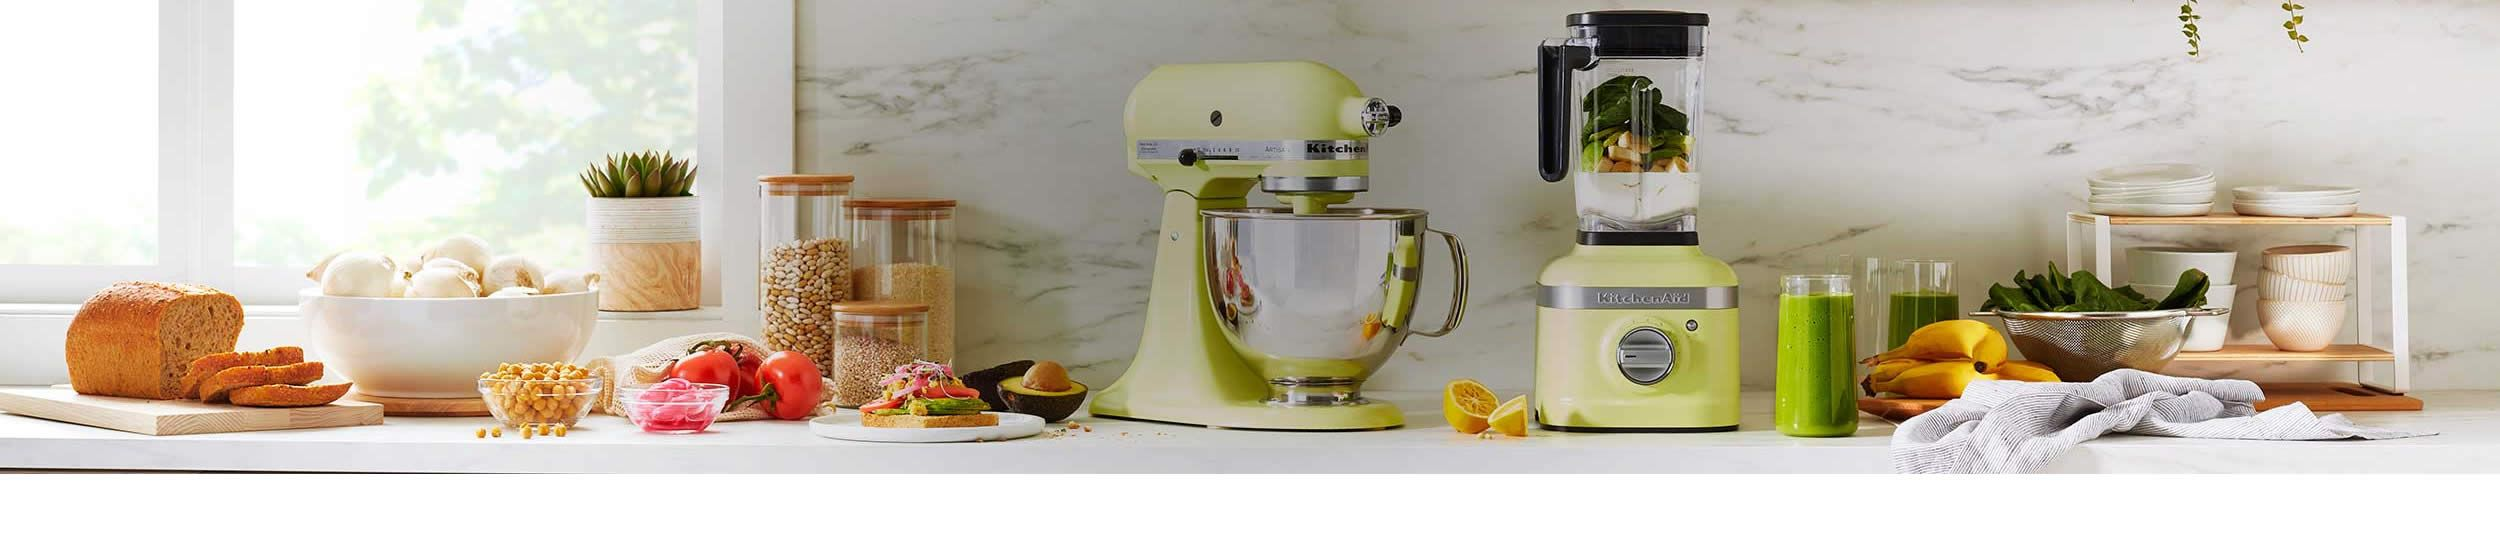 Countertop outfitted with KitchenAid® appliances.